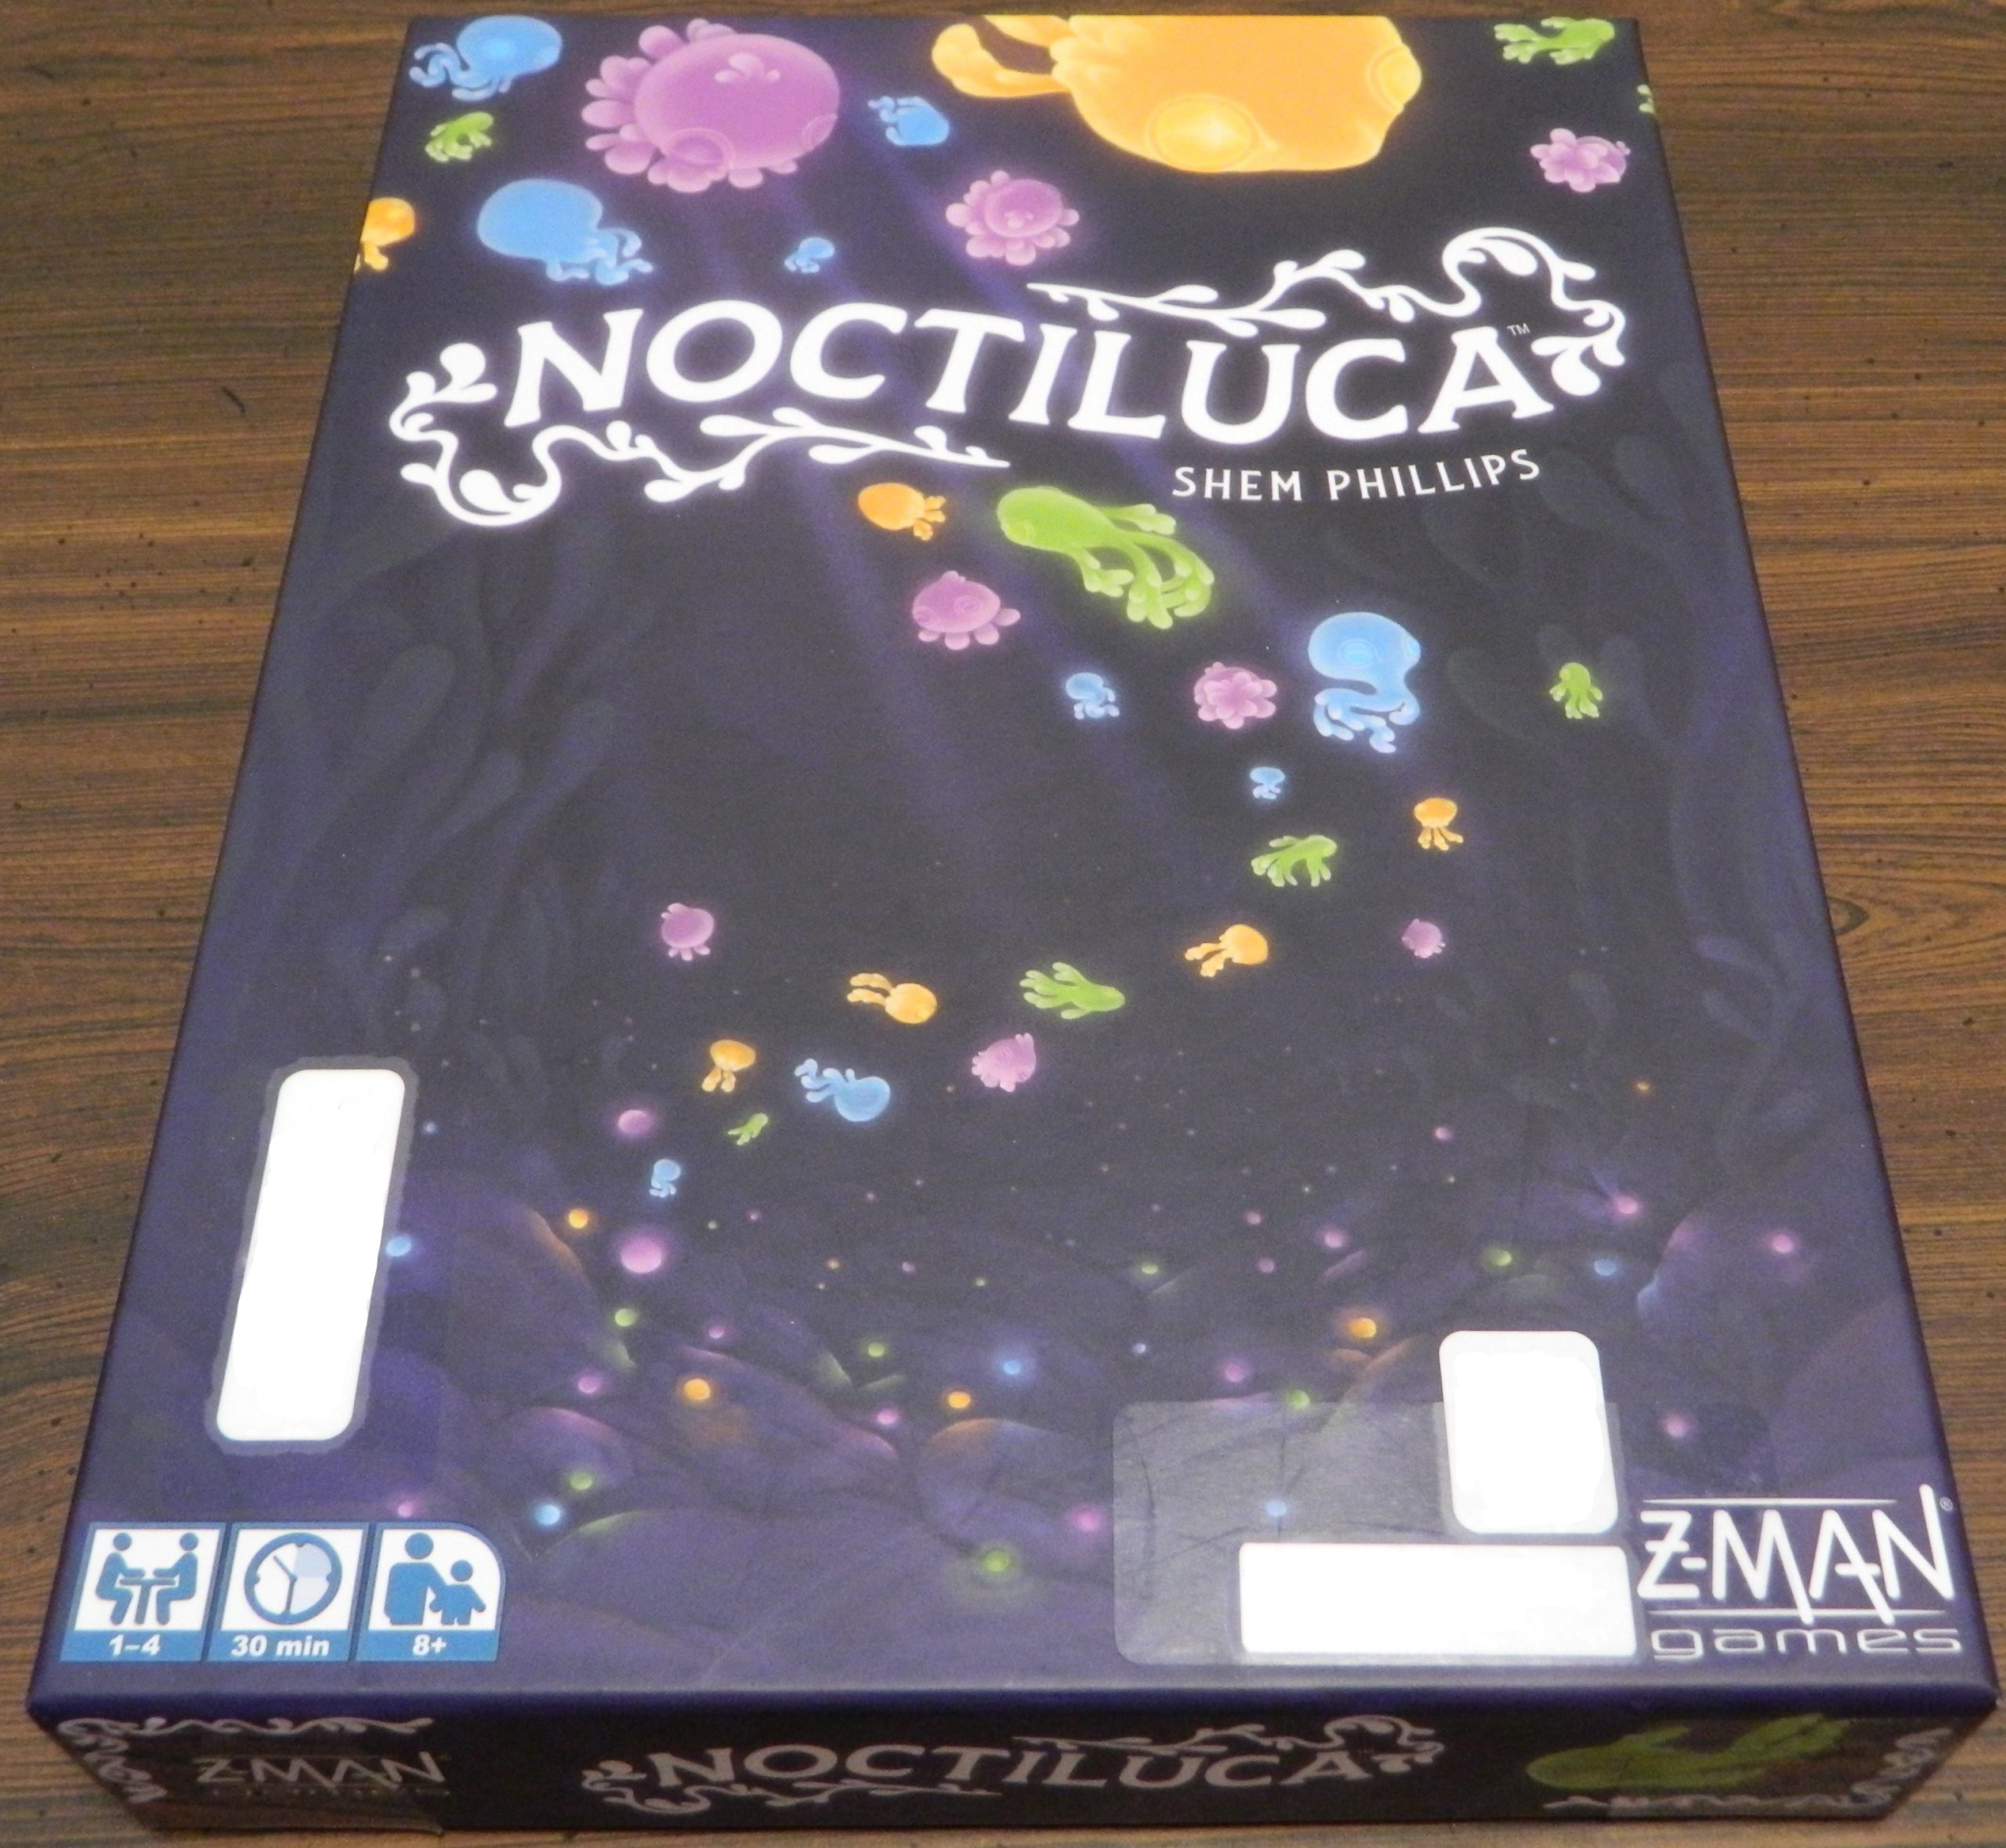 Box for Noctiluca